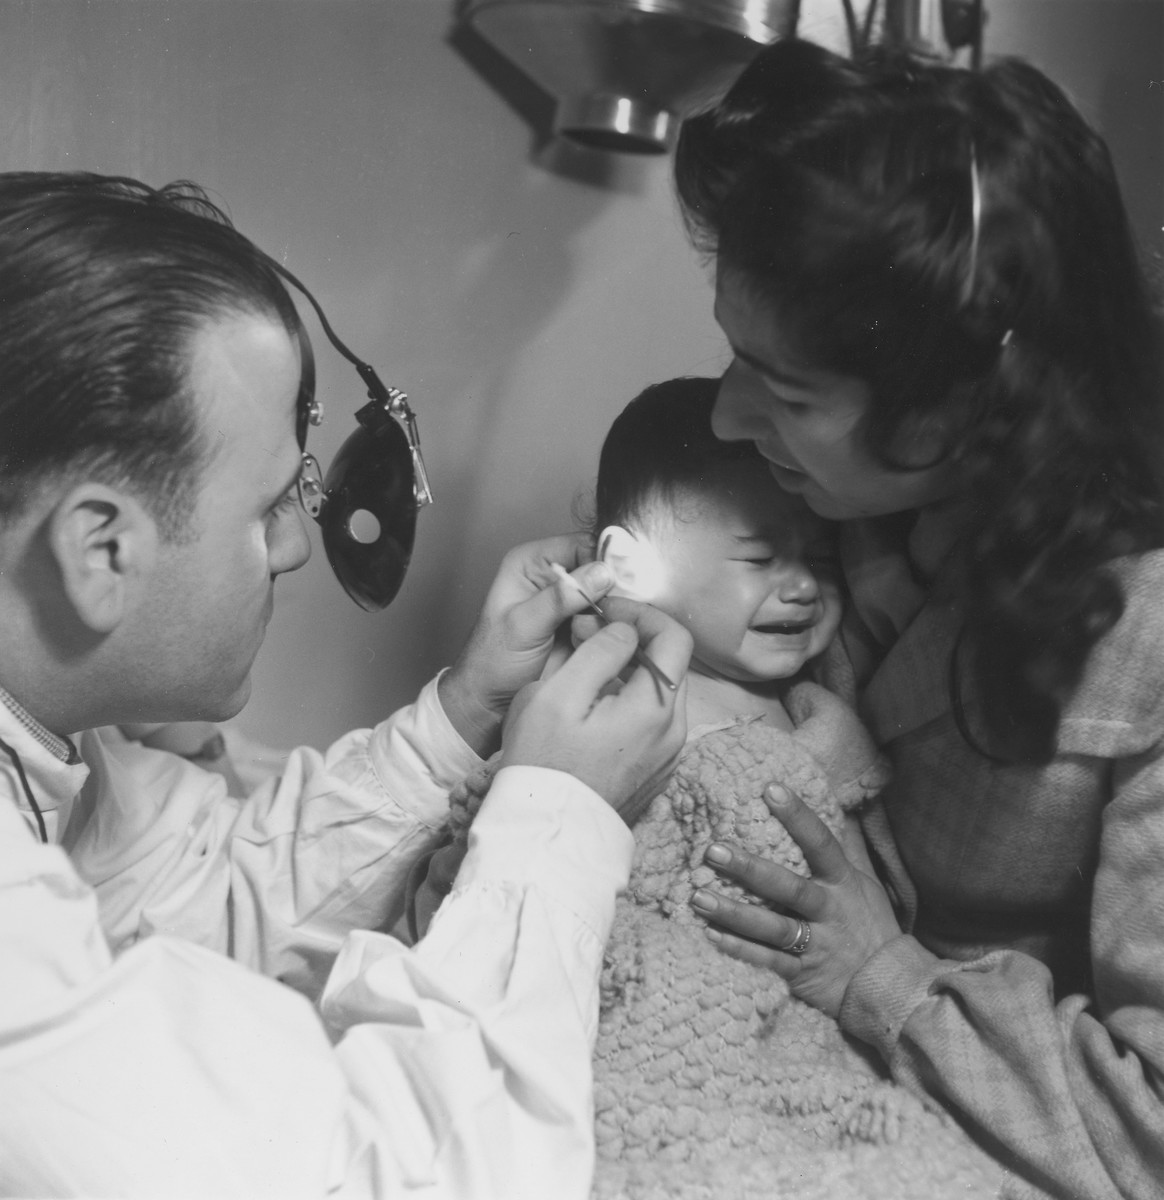 A physician looks into the ear of a sick infant in an OSE health clinic.